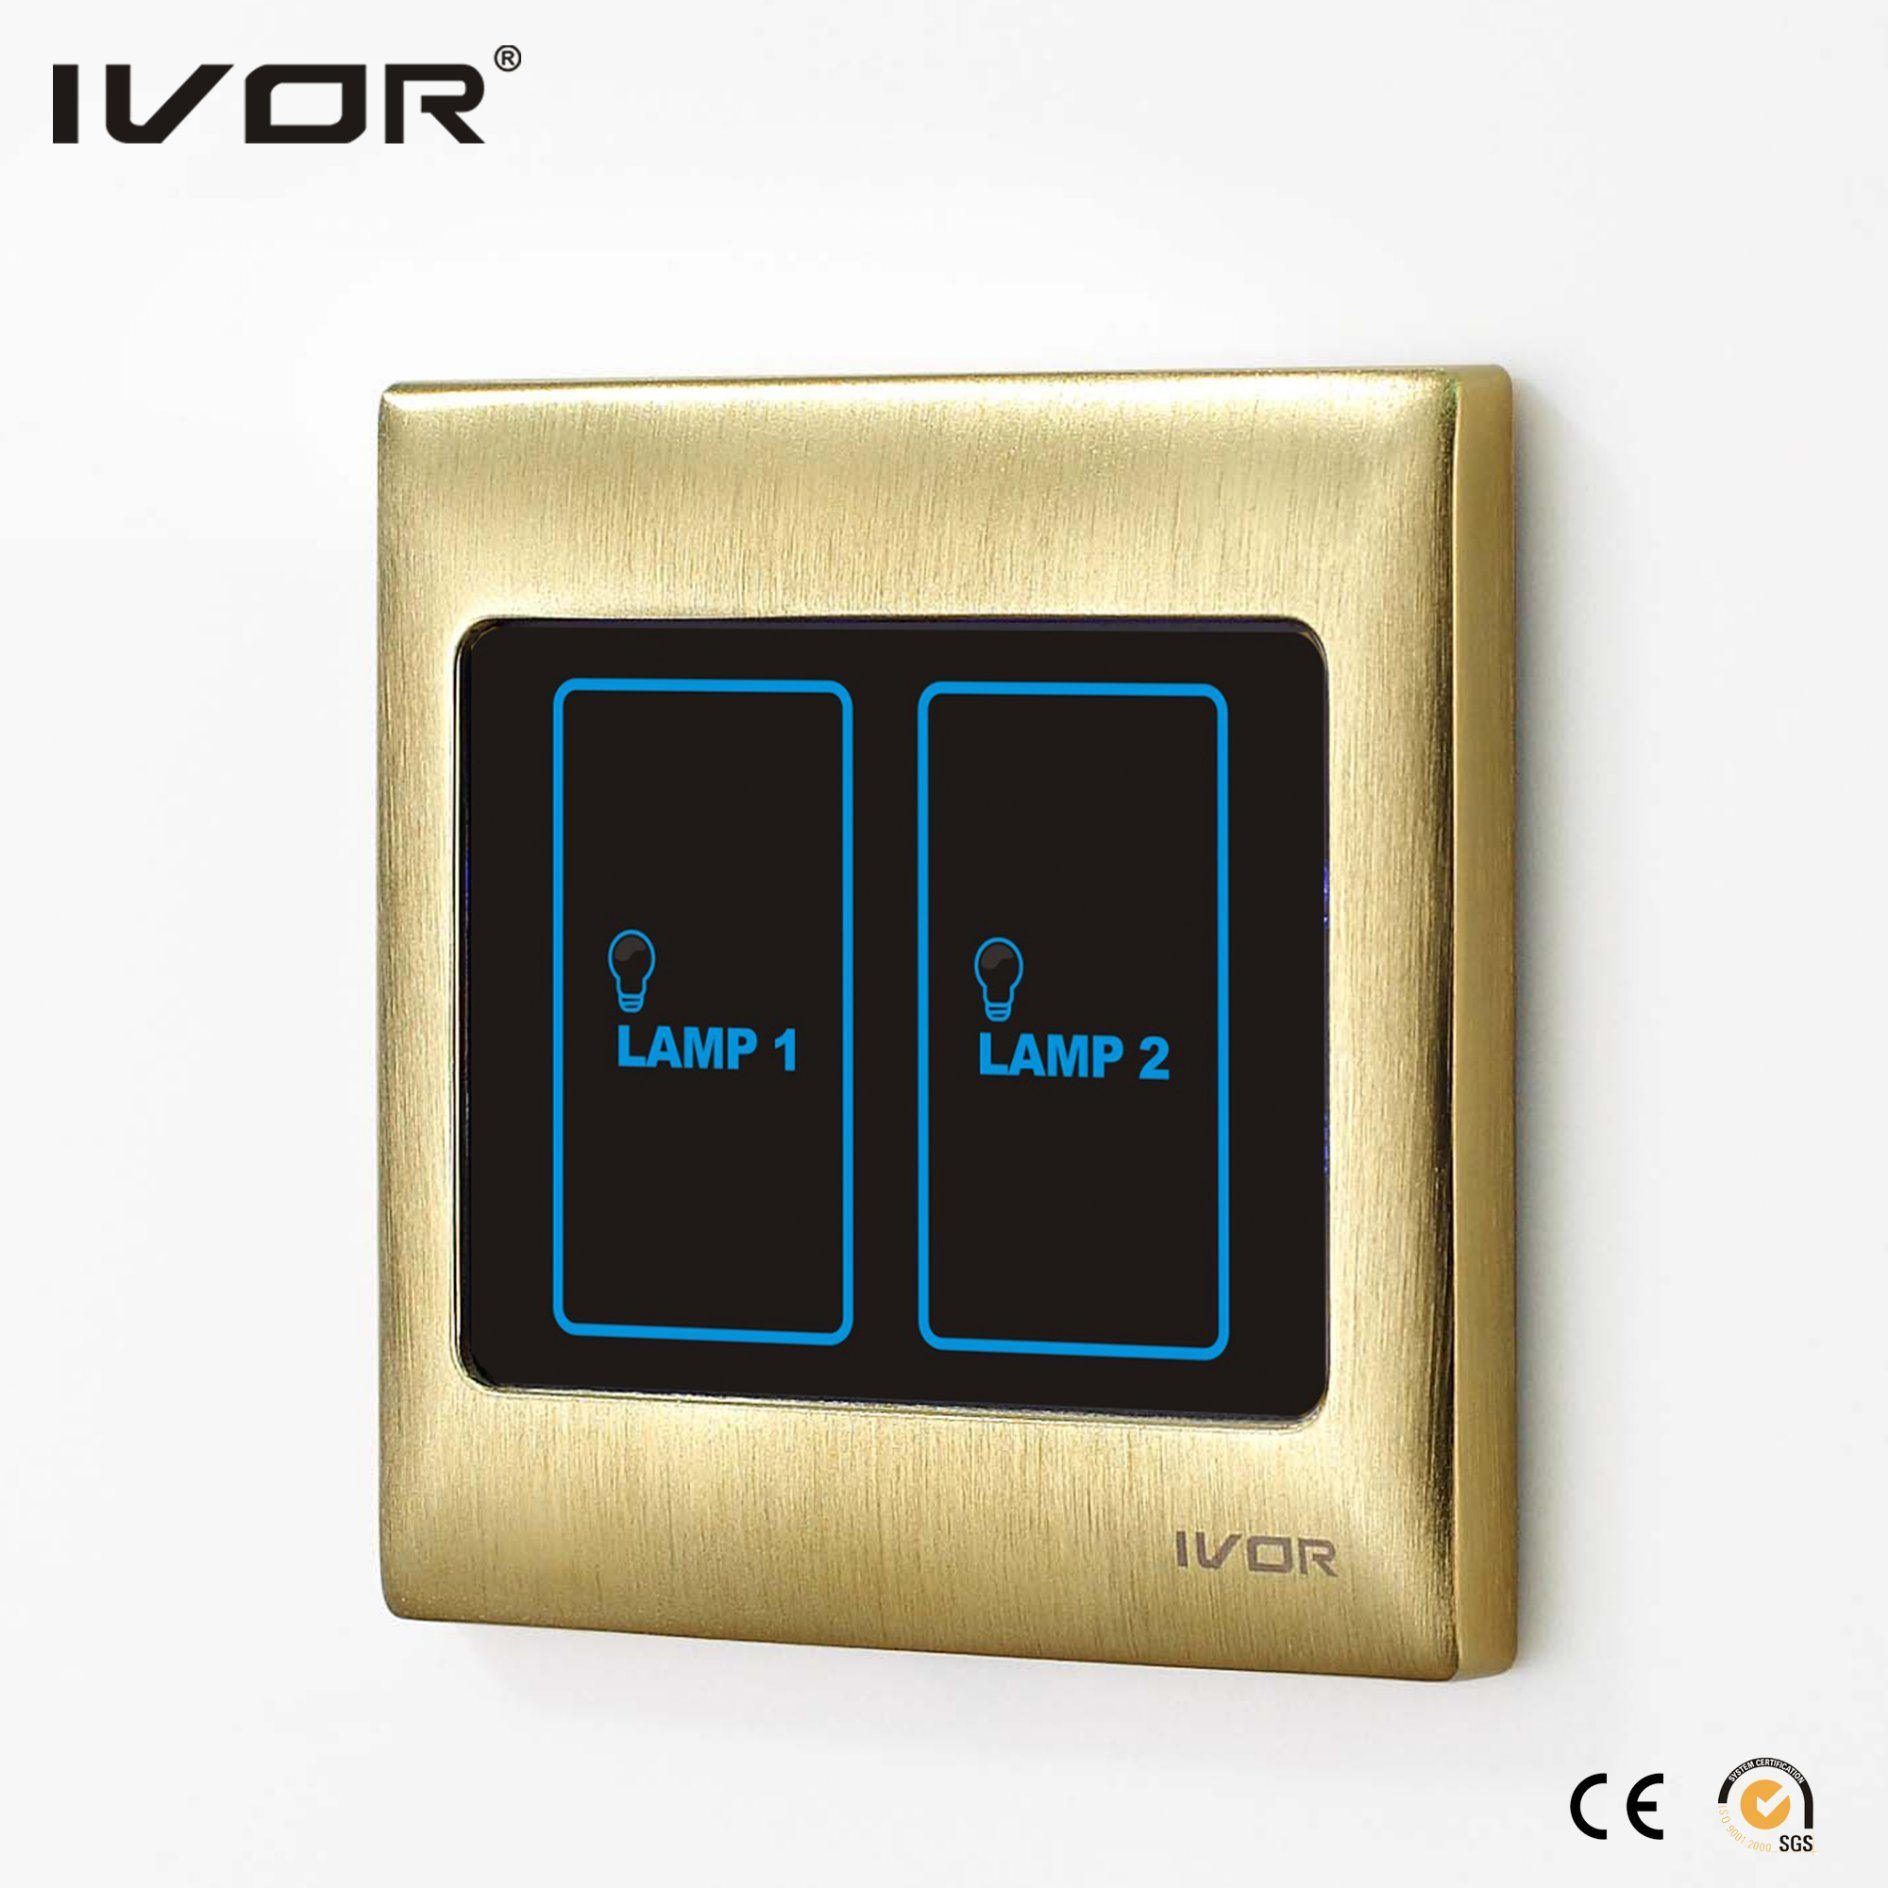 Ivor Smart Home Touch Screen Light Switch Wall Switch with Master Control / Remote Control